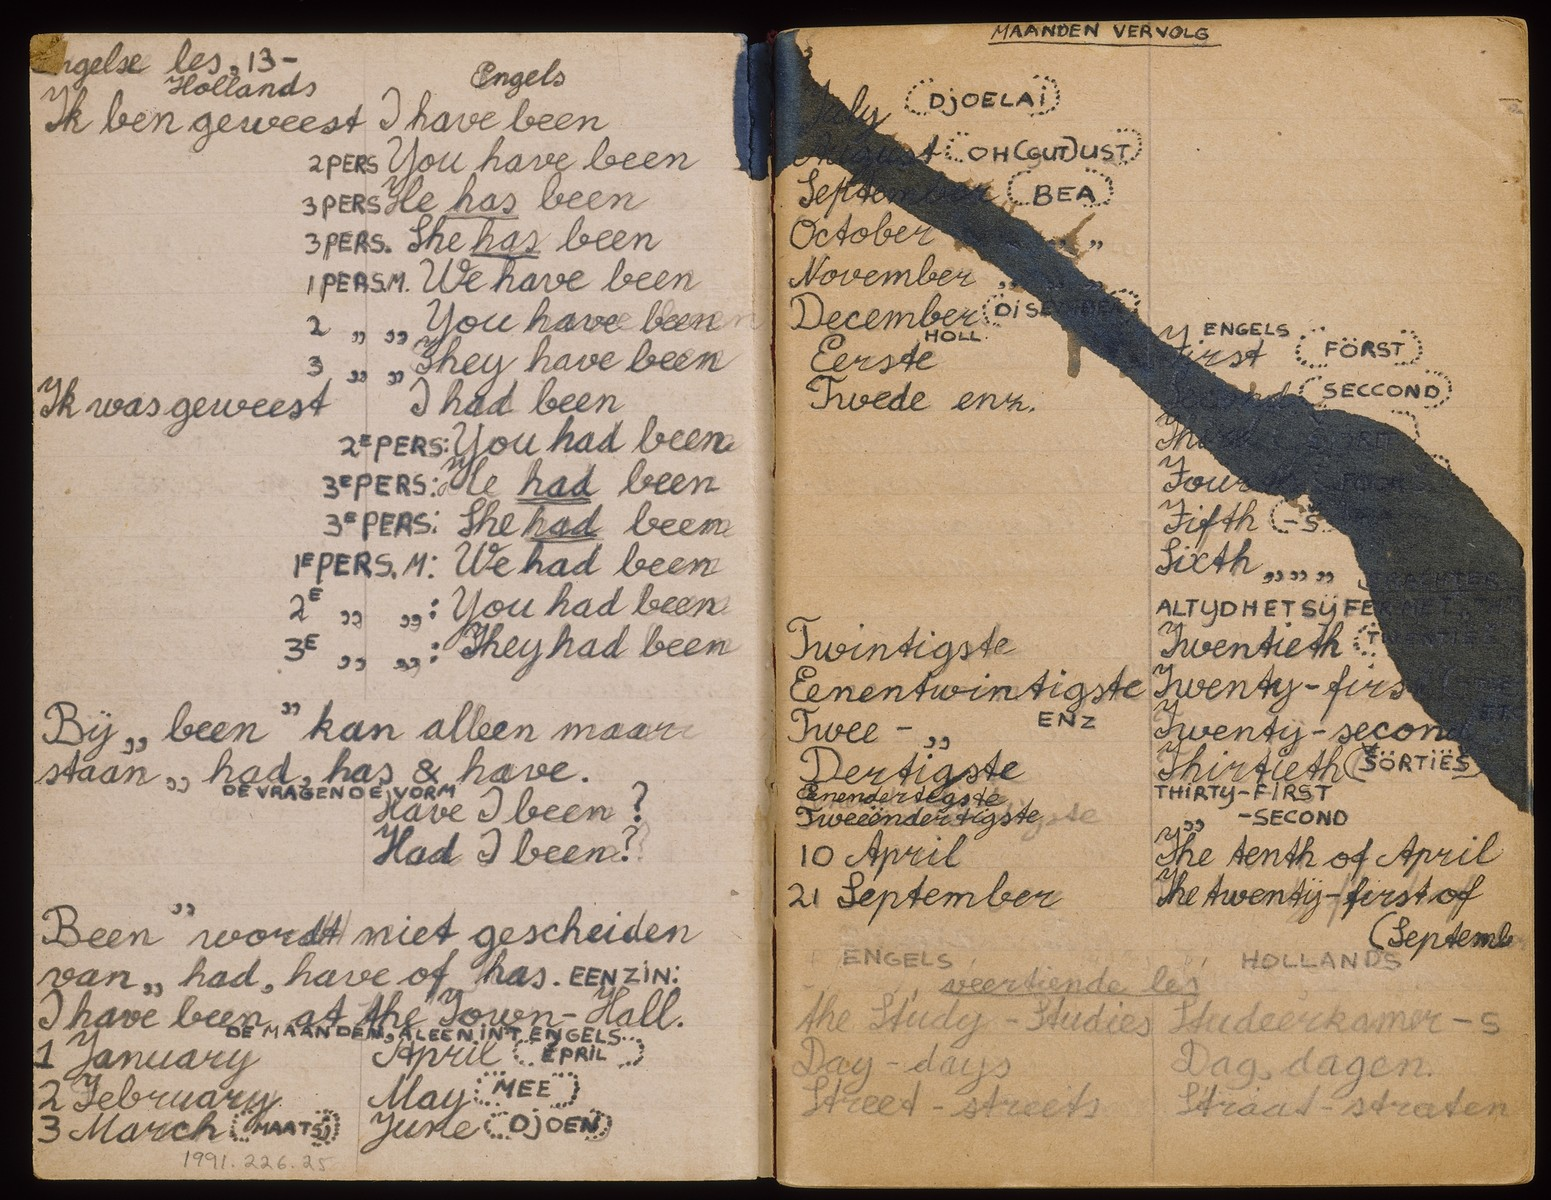 """An open page of a book of English lessons handwritten in Dutch and English by Albert and Max Heppner while they were living in hiding in Deurne-Zeilberg, Holland.    The volume includes two books in one: the first is """"In Grove Trekken, Onze Geschiedenis,"""" written by Max Heppner, and the second, a book of English lessons, written by both Max and Albert."""